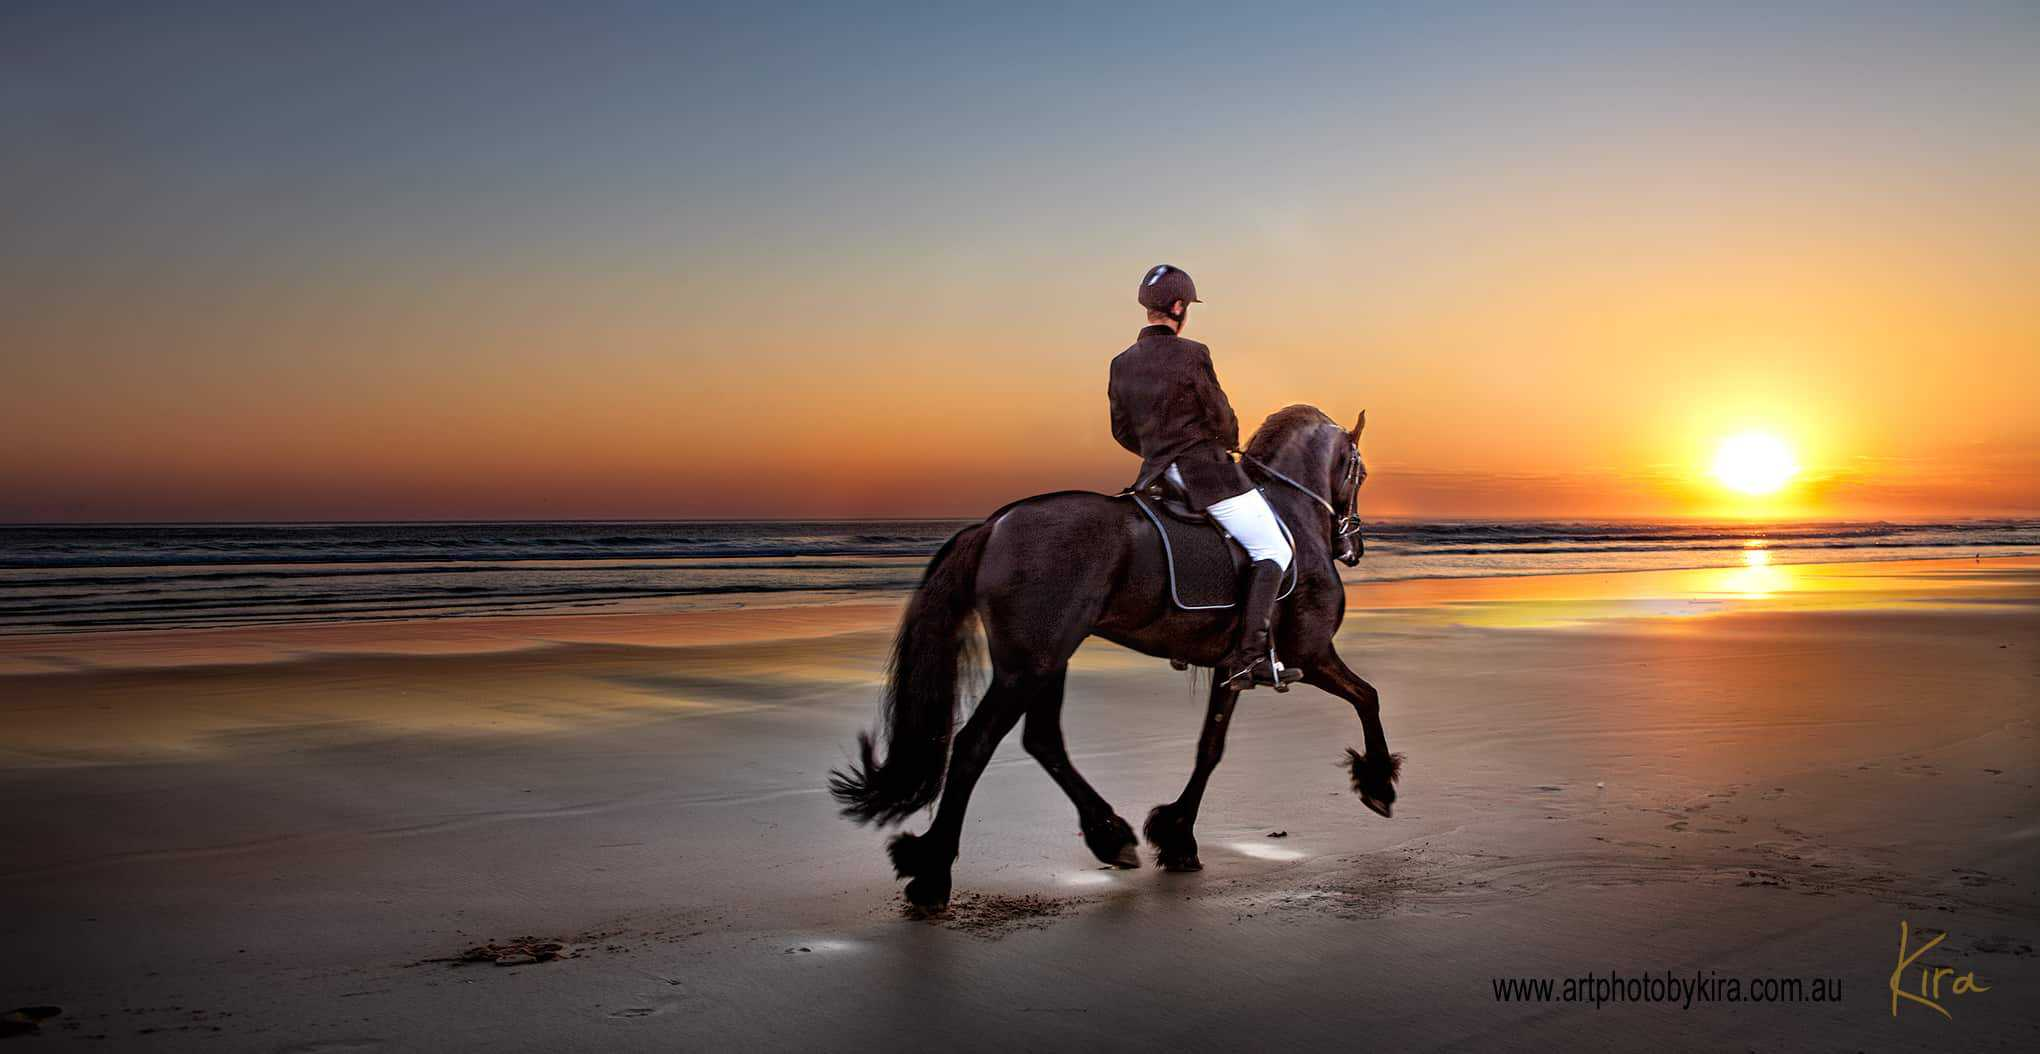 glamour shot with horse riding into sunset